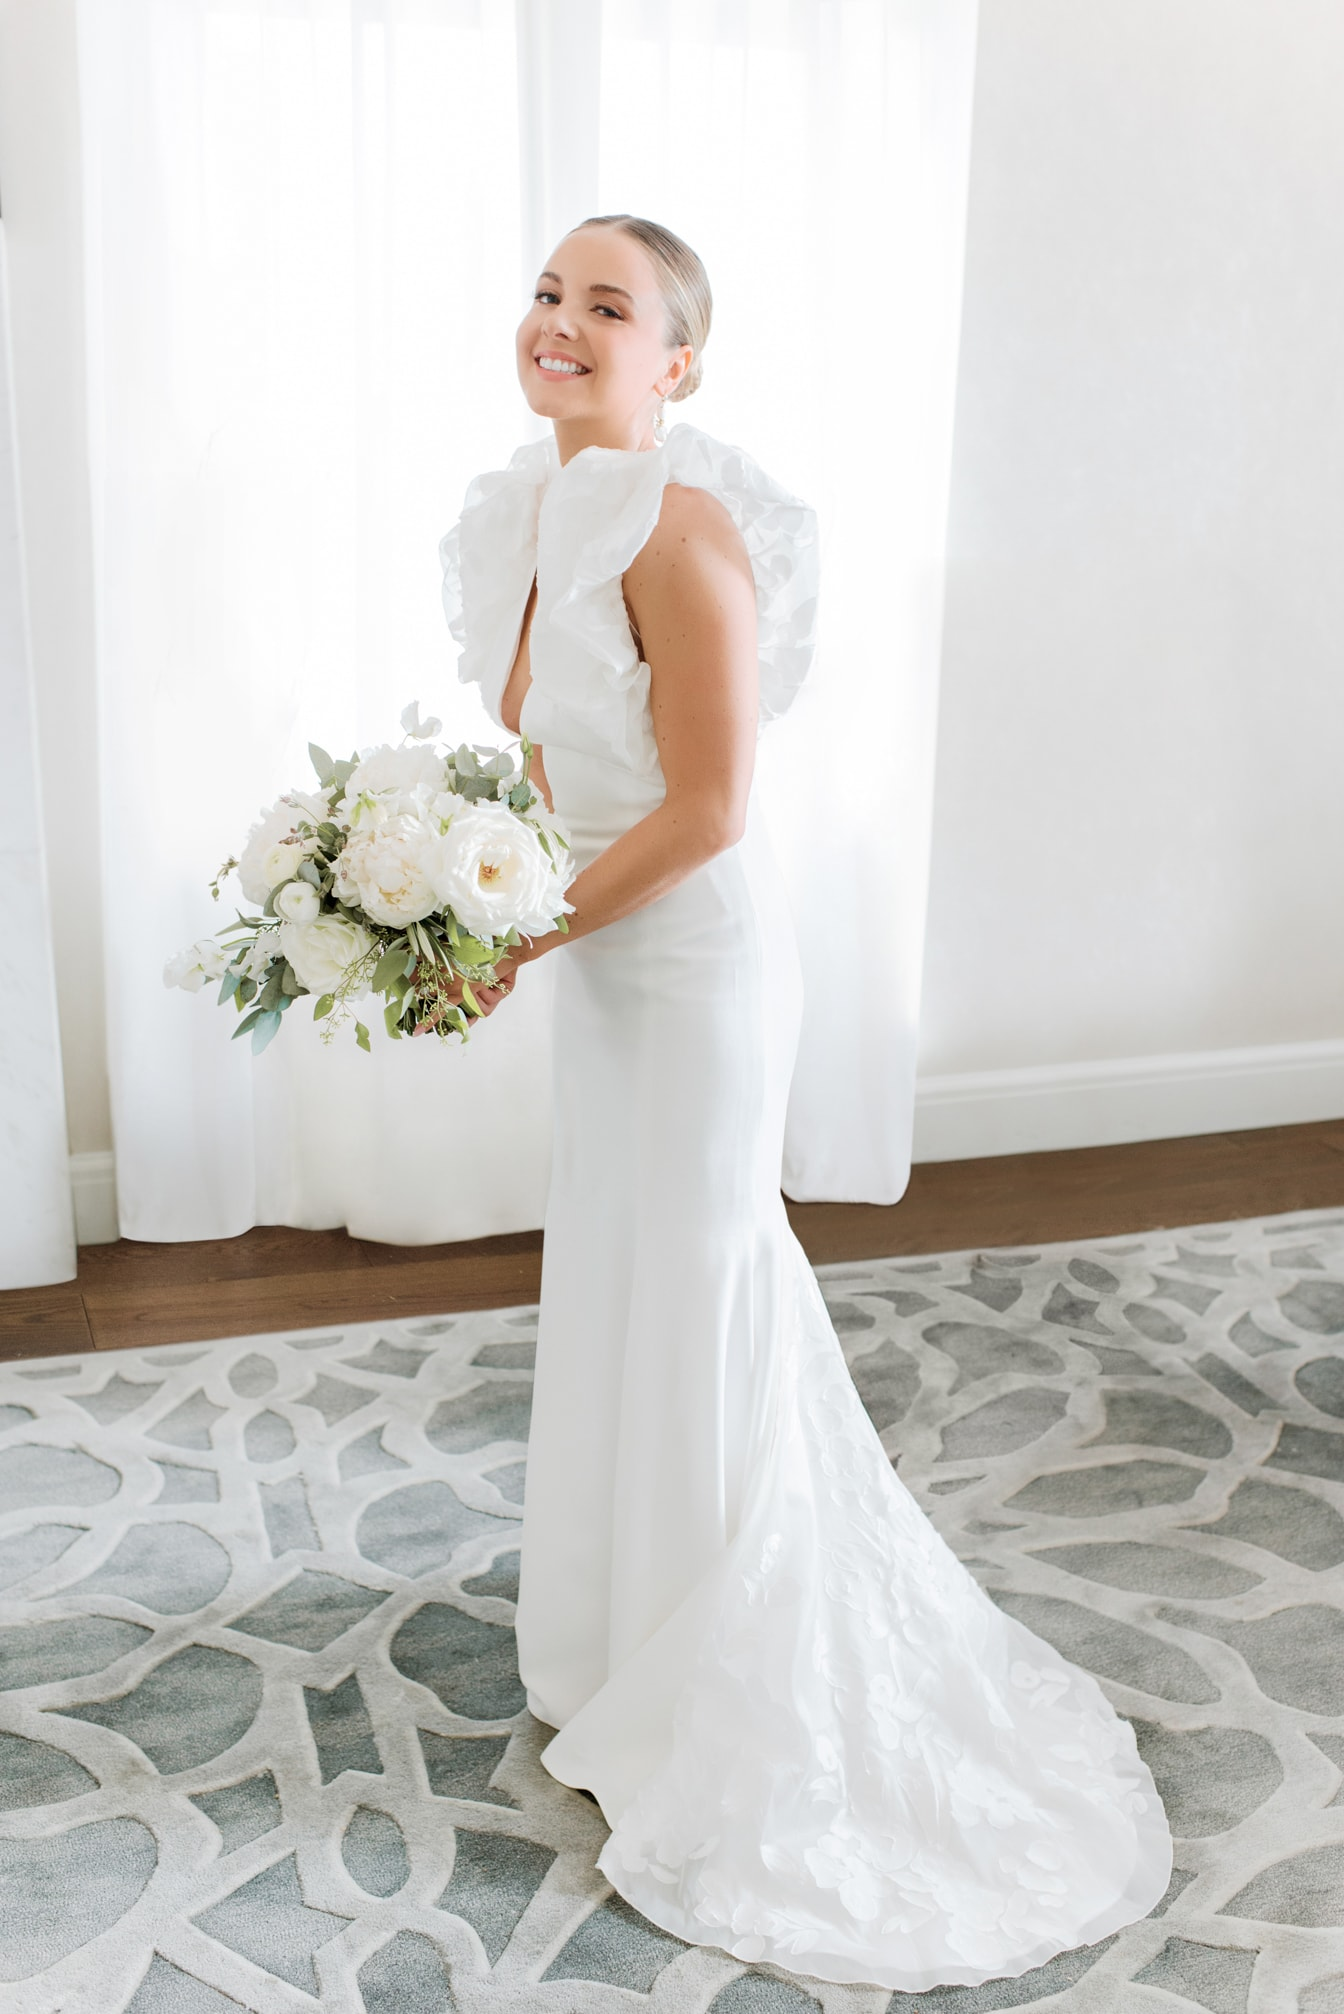 Chicago modern bride getting ready and smiling with her bouquet